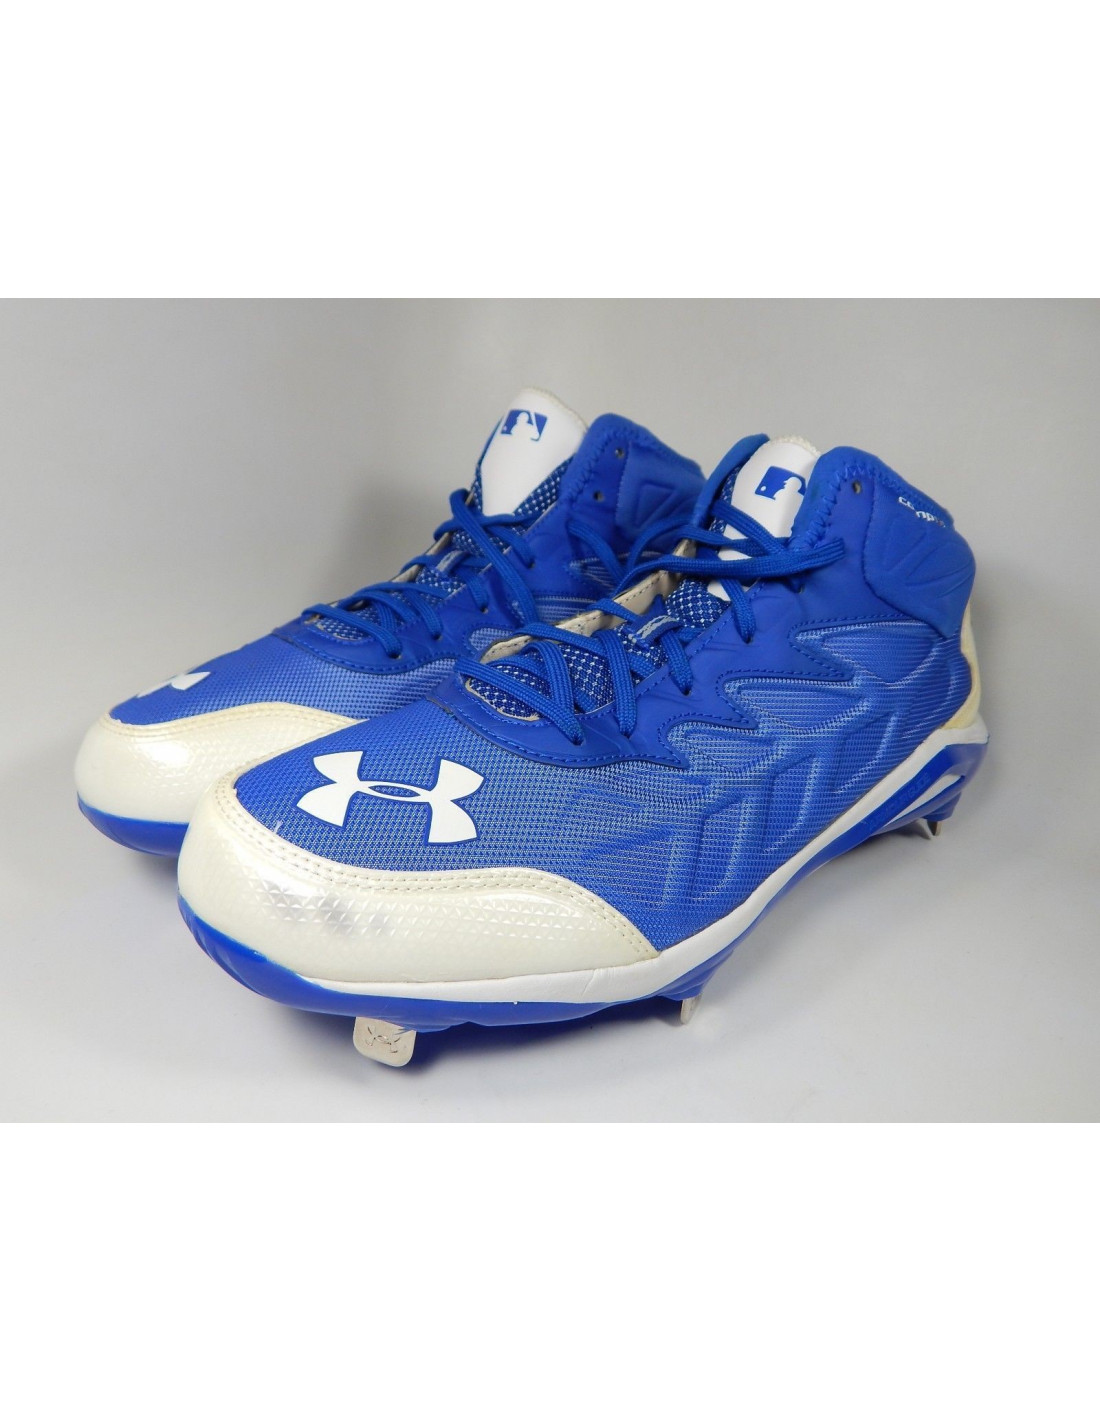 90cc1a341acc Under Armour Heater ST Mid Metal Baseball Cleats - Sport House